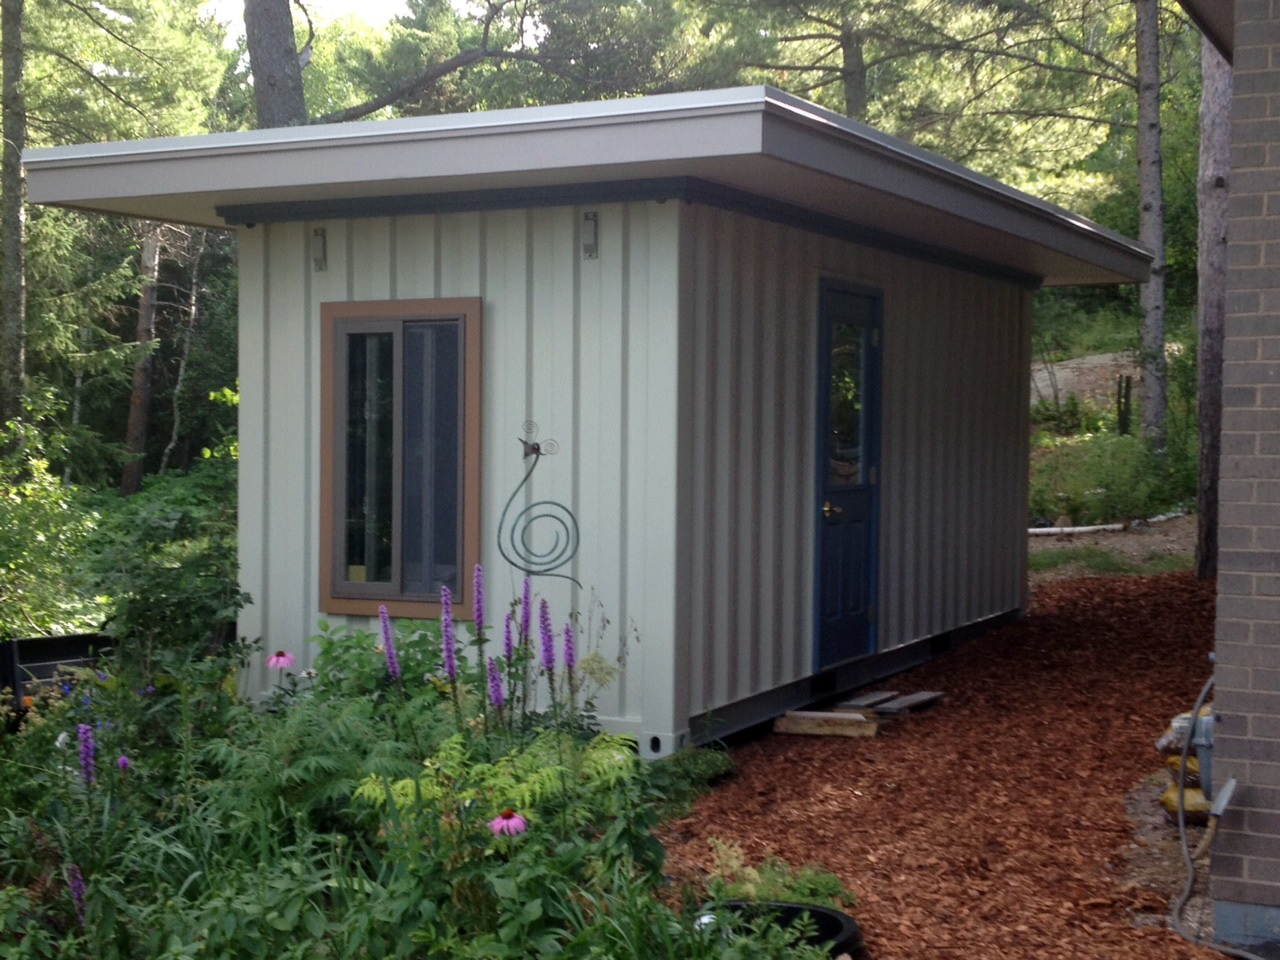 A Super Cubes customer converted this 20' container into a beautiful garden shed